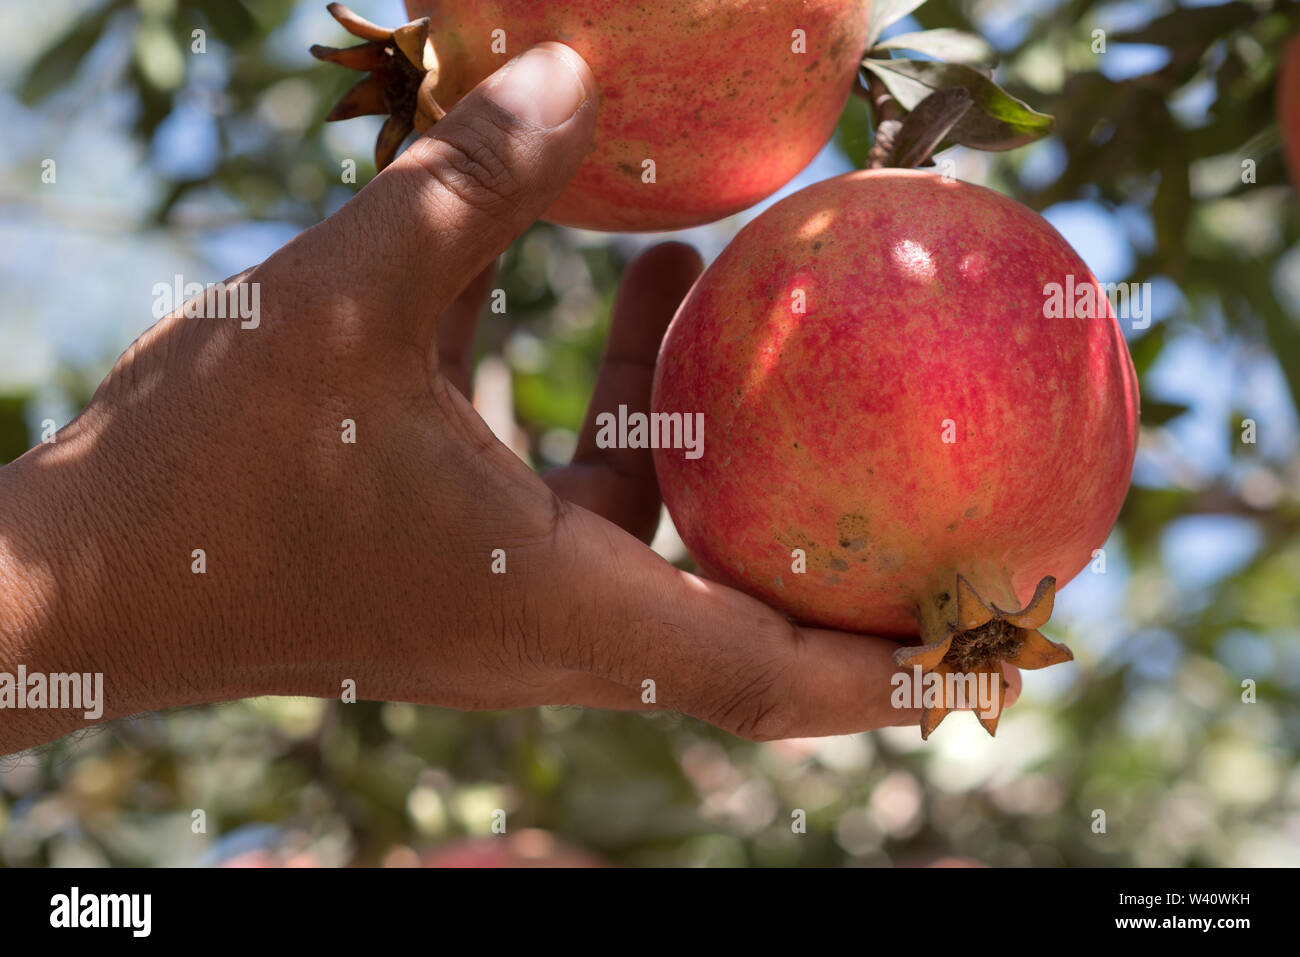 Man taking Ripe Colorful Pomegranate Fruit  fruit from a tree. Red pomegranate fruit on the tree in green leaves on blue sky background. - Stock Image